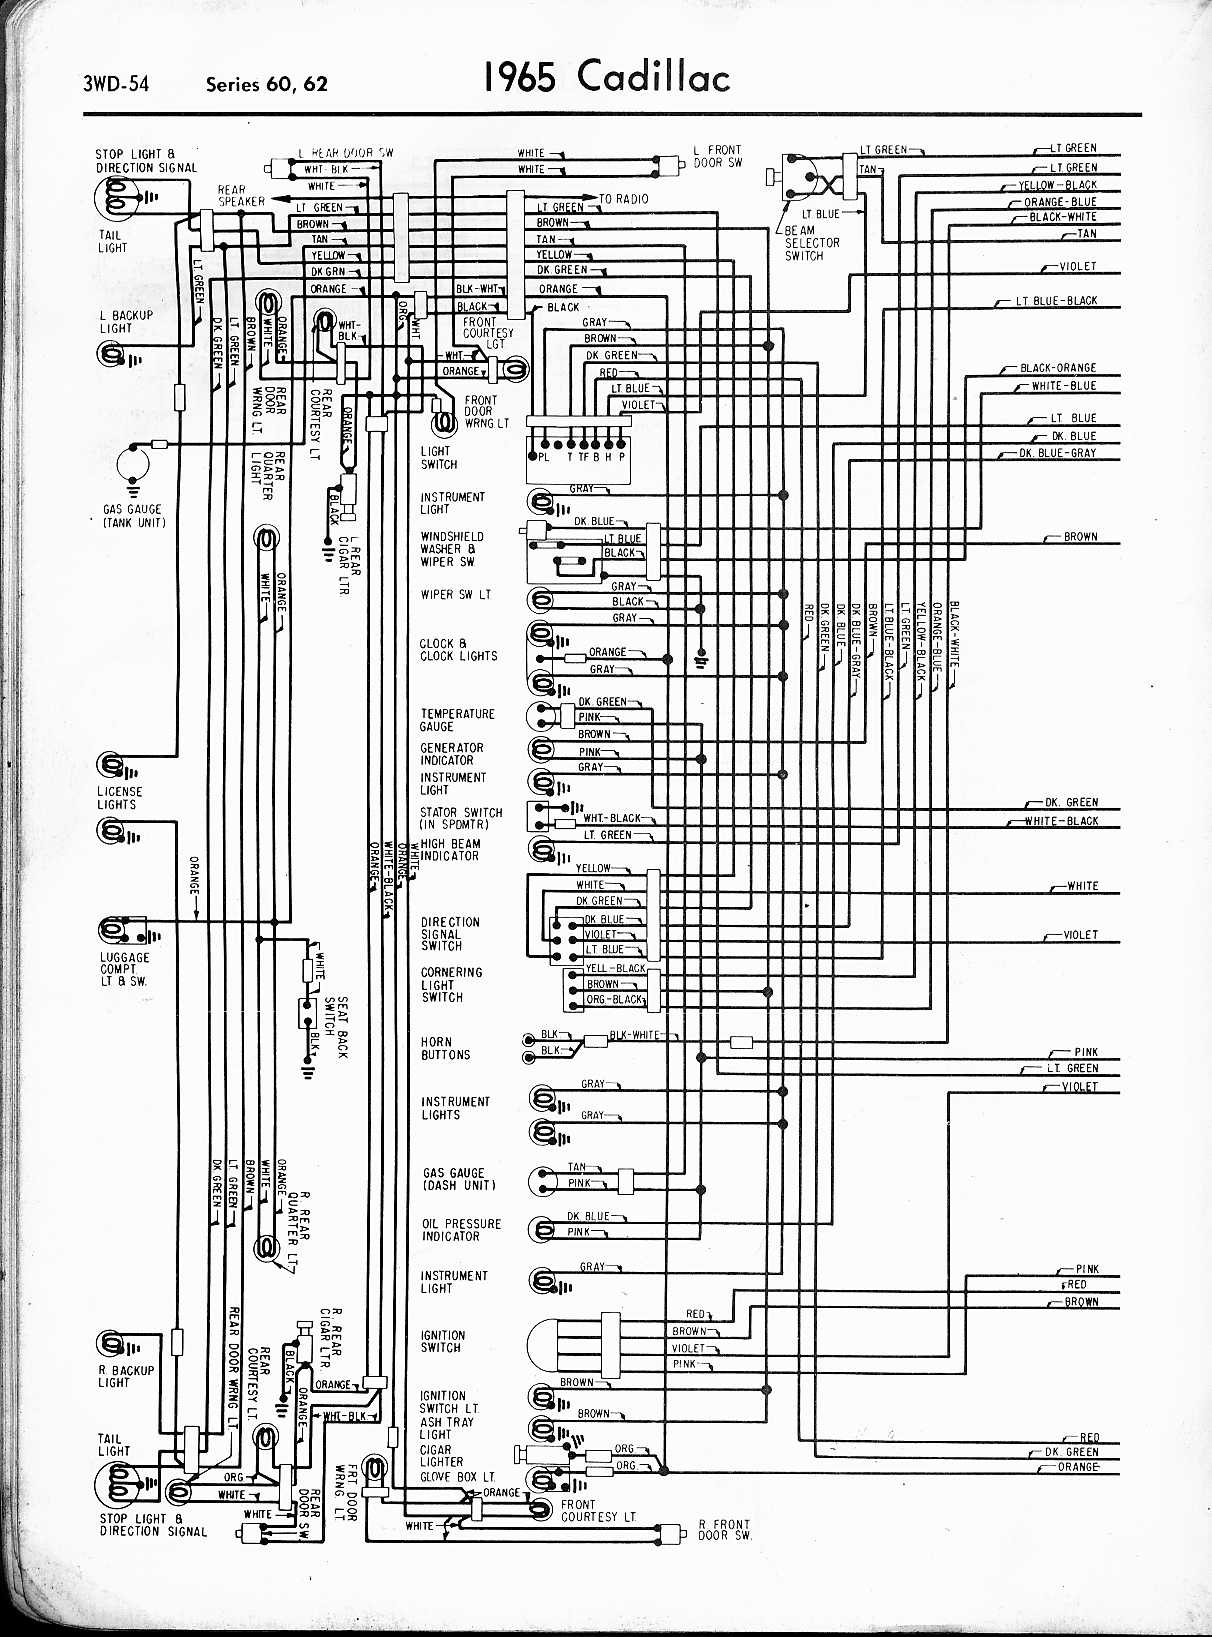 Cadillac Wiring Diagrams: 1957-1965The Old Car Manual Project